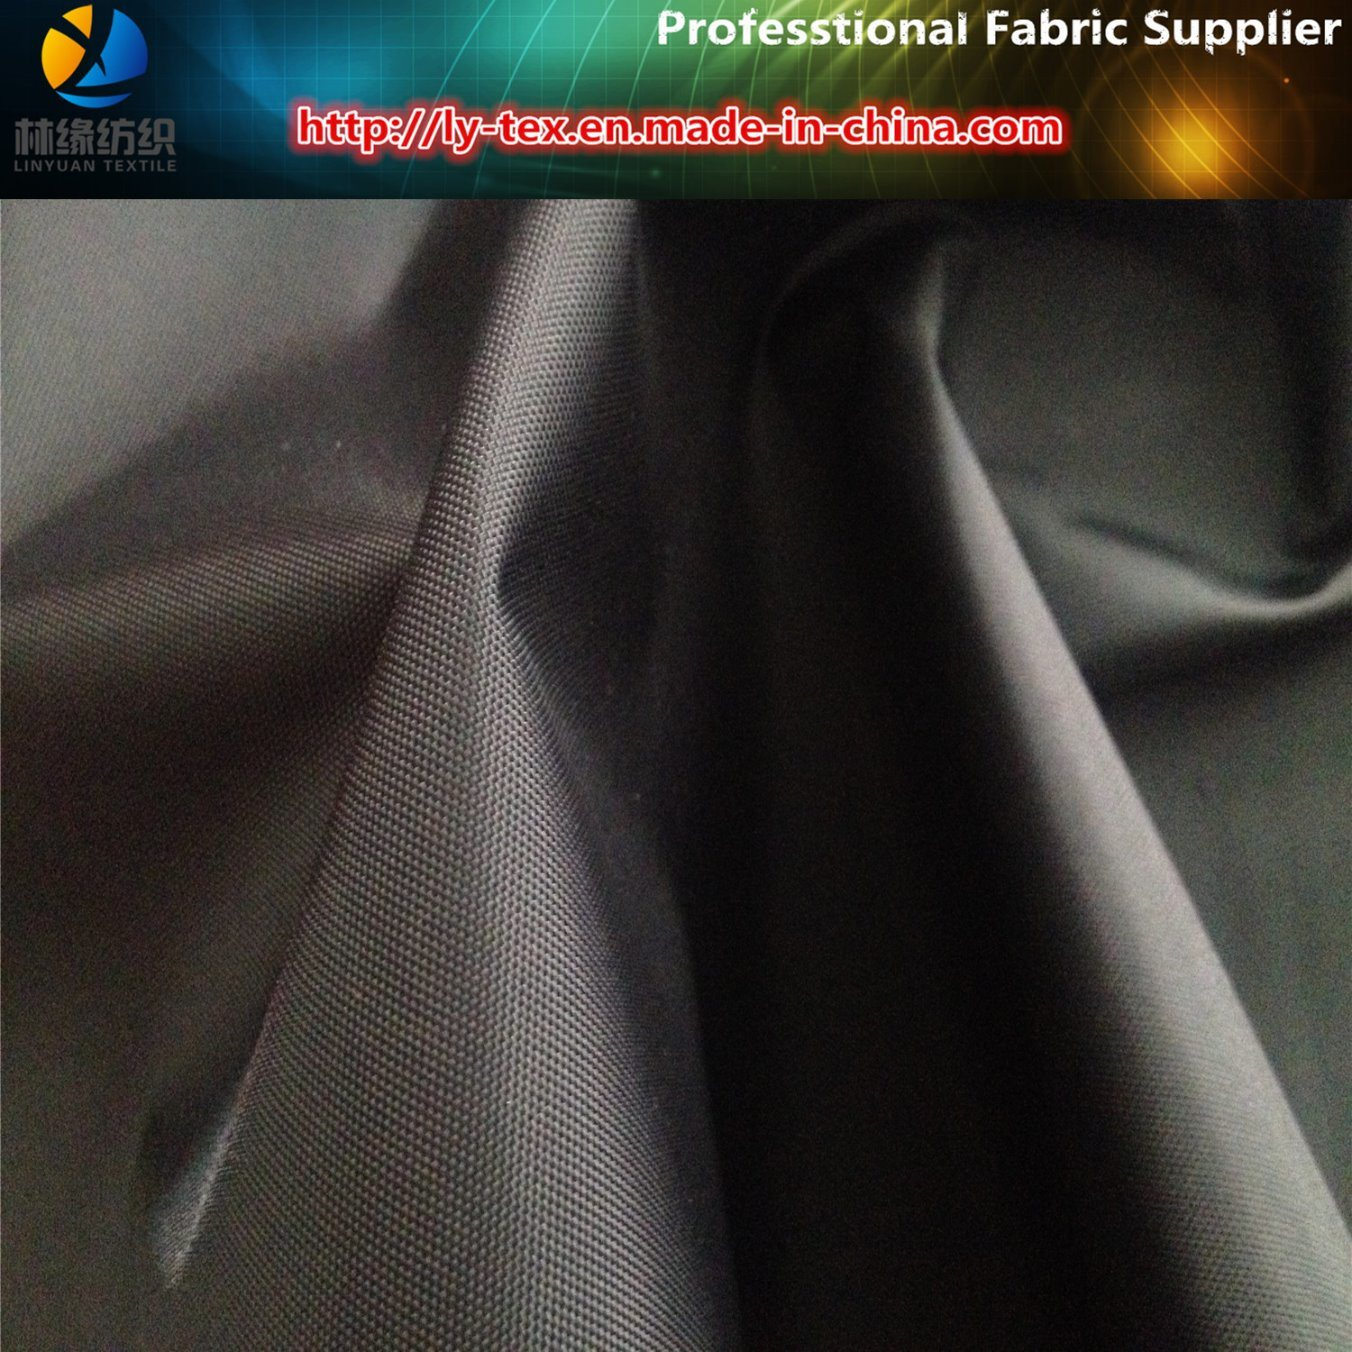 210d Nylon Oxford Fabric, 116t Nylon Oxford with Coating for Raincoat, Nylon Fabric